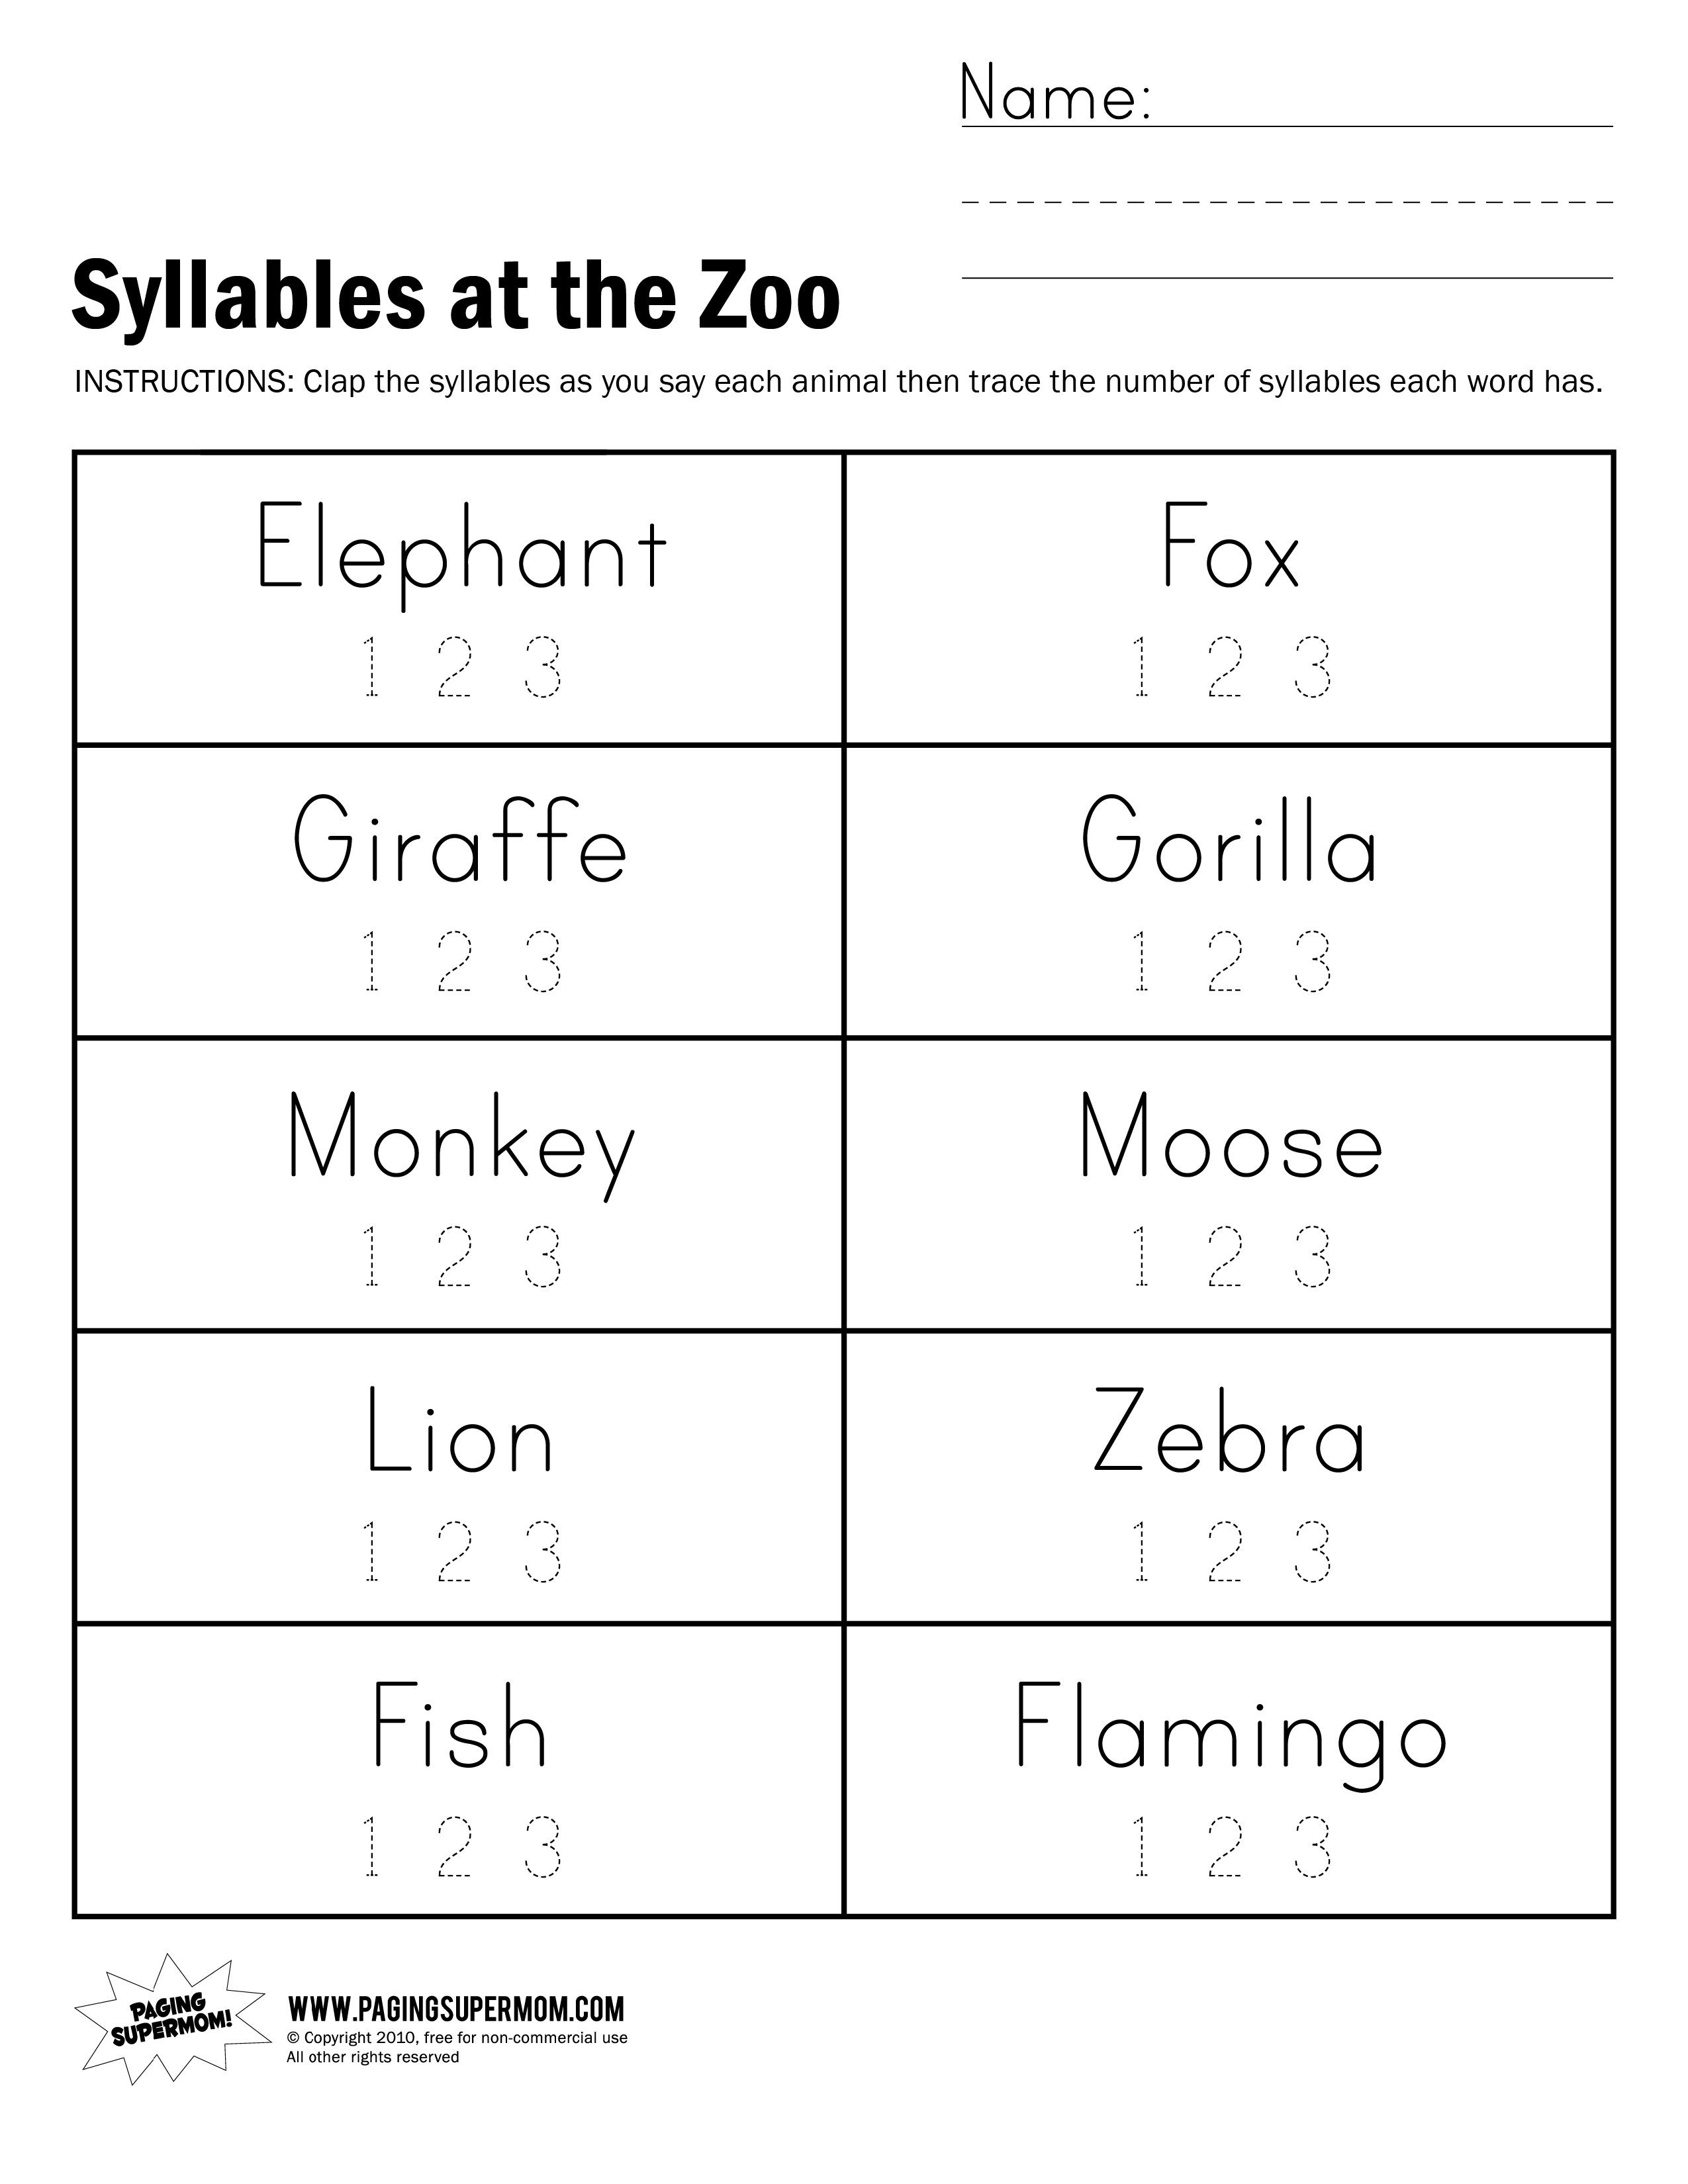 Syllables At The Zoo Worksheet | Reading | Syllable, Worksheets - Free Printable Open And Closed Syllable Worksheets